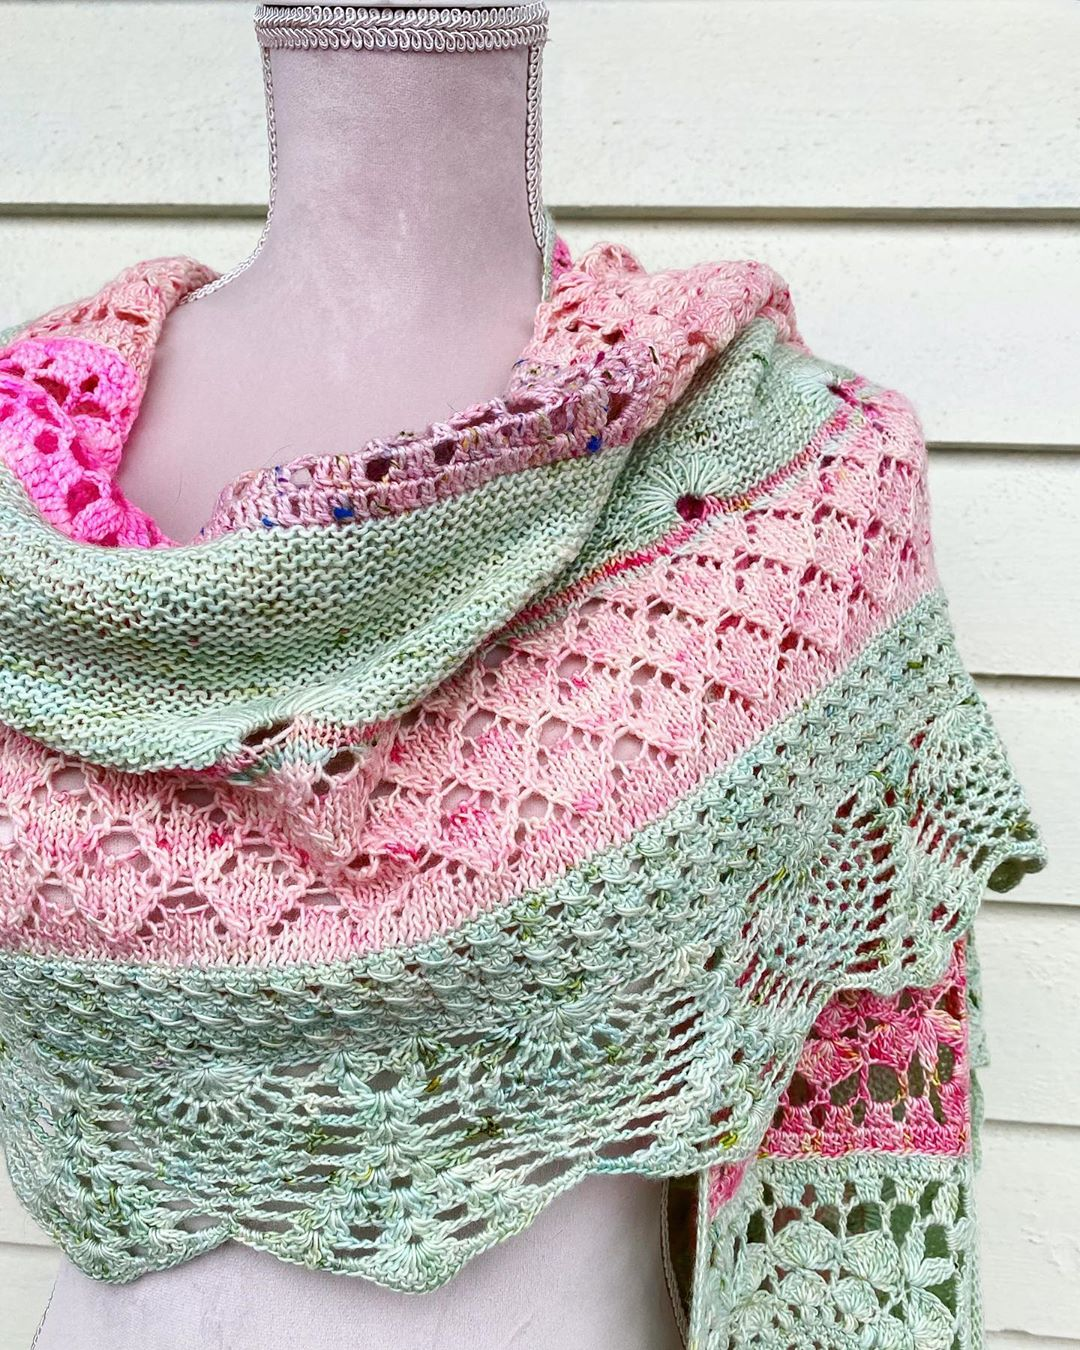 It'S Raining Heavily Today, But I Just H Cherrybloomwrap - Shawl Knitting